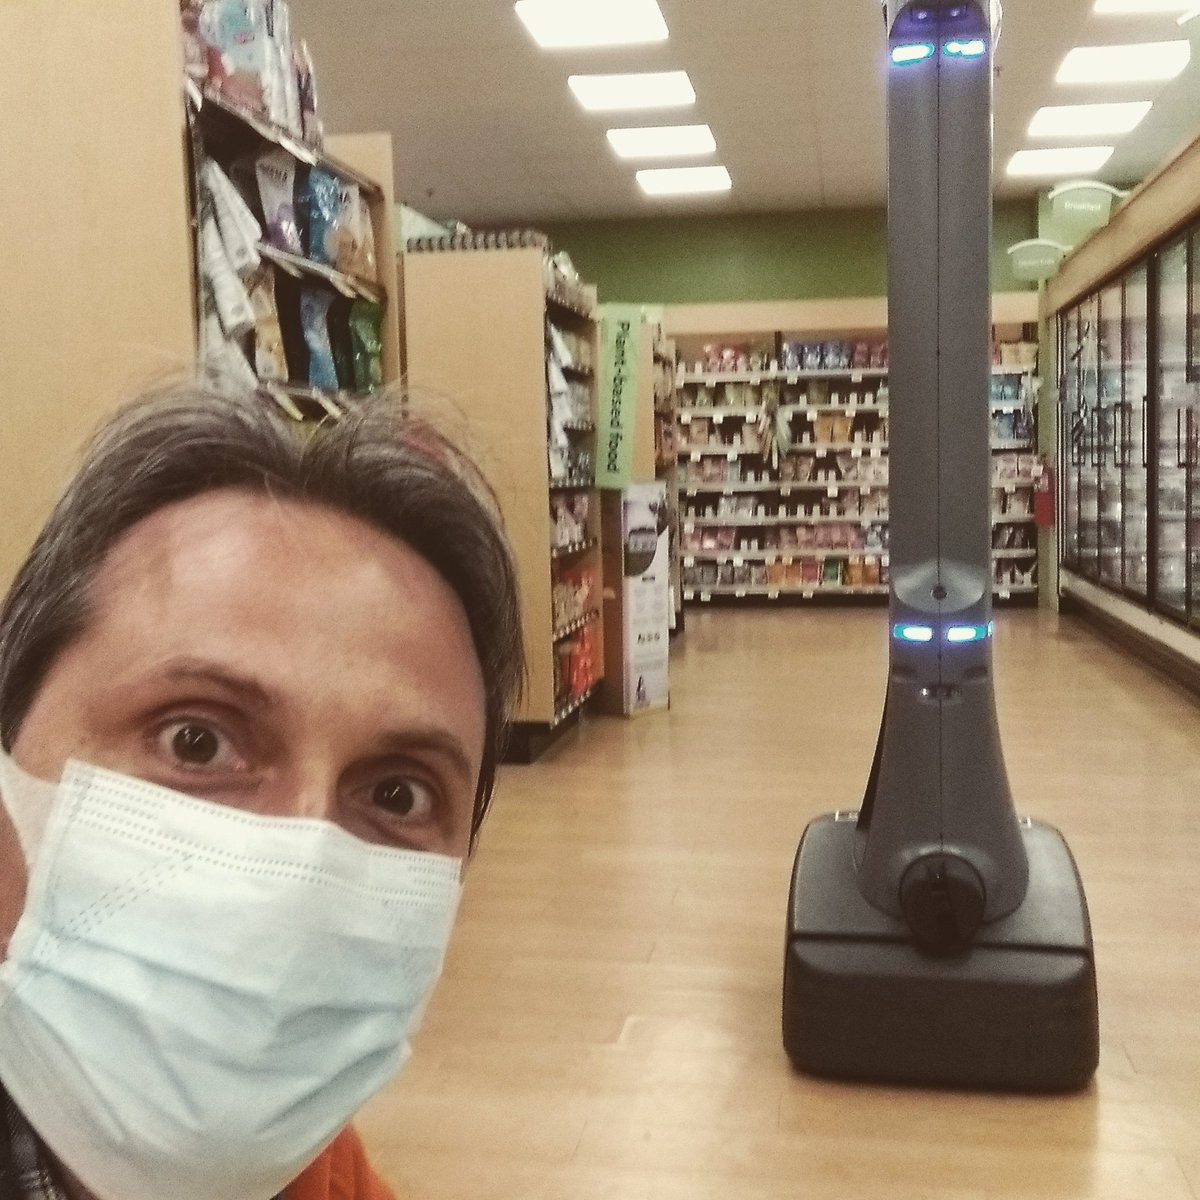 Meanwhile, in a grocery store far far away... #robotics in #Boston pic.twitter.com/XMnH9zvJX7